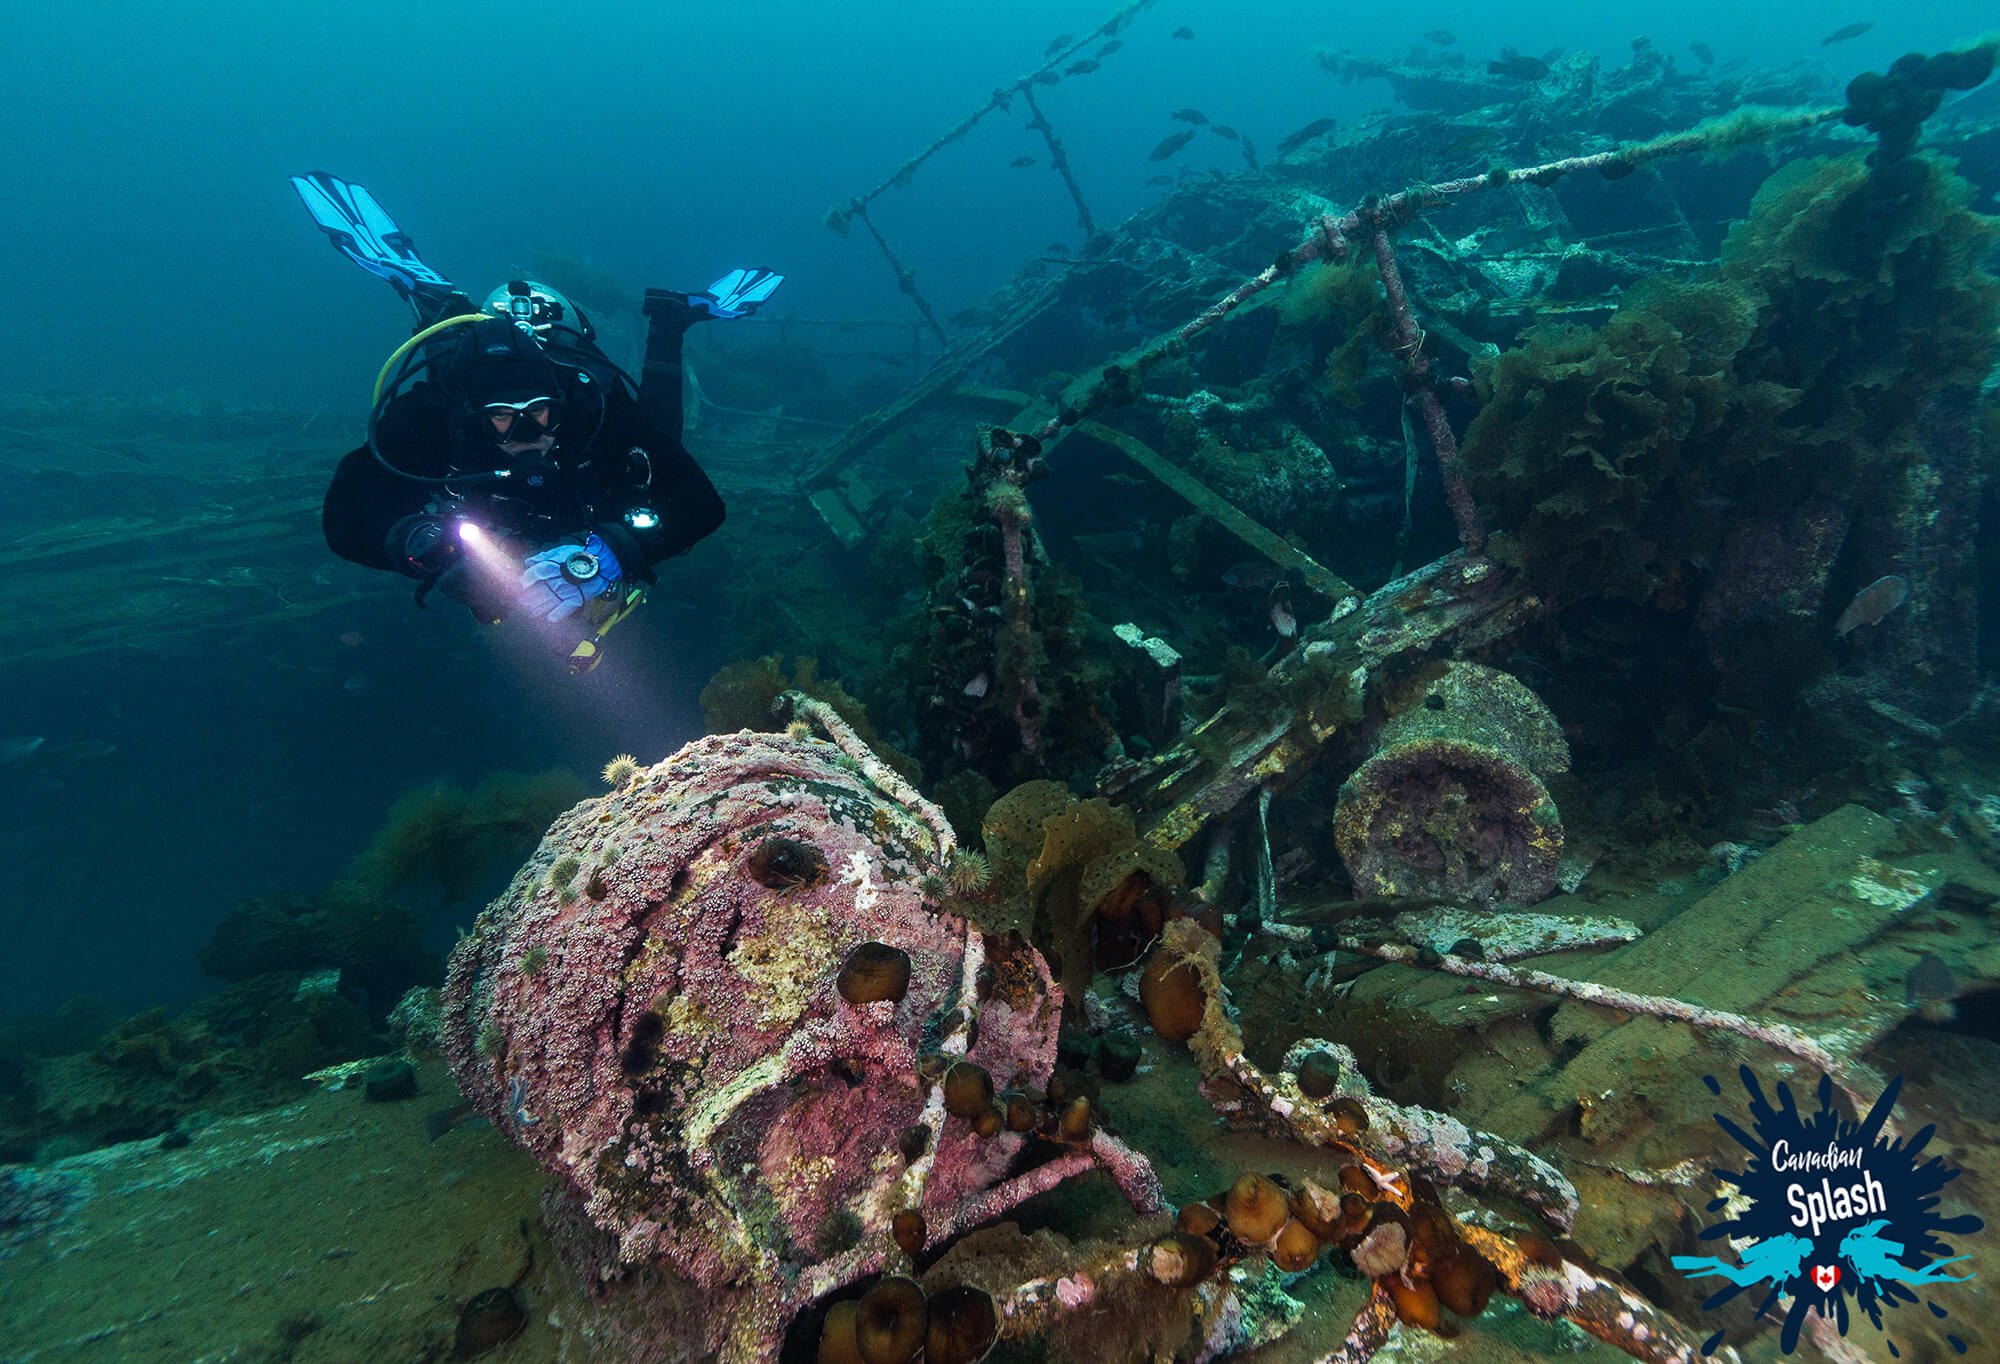 The PLM Shipwreck in Newfoundland